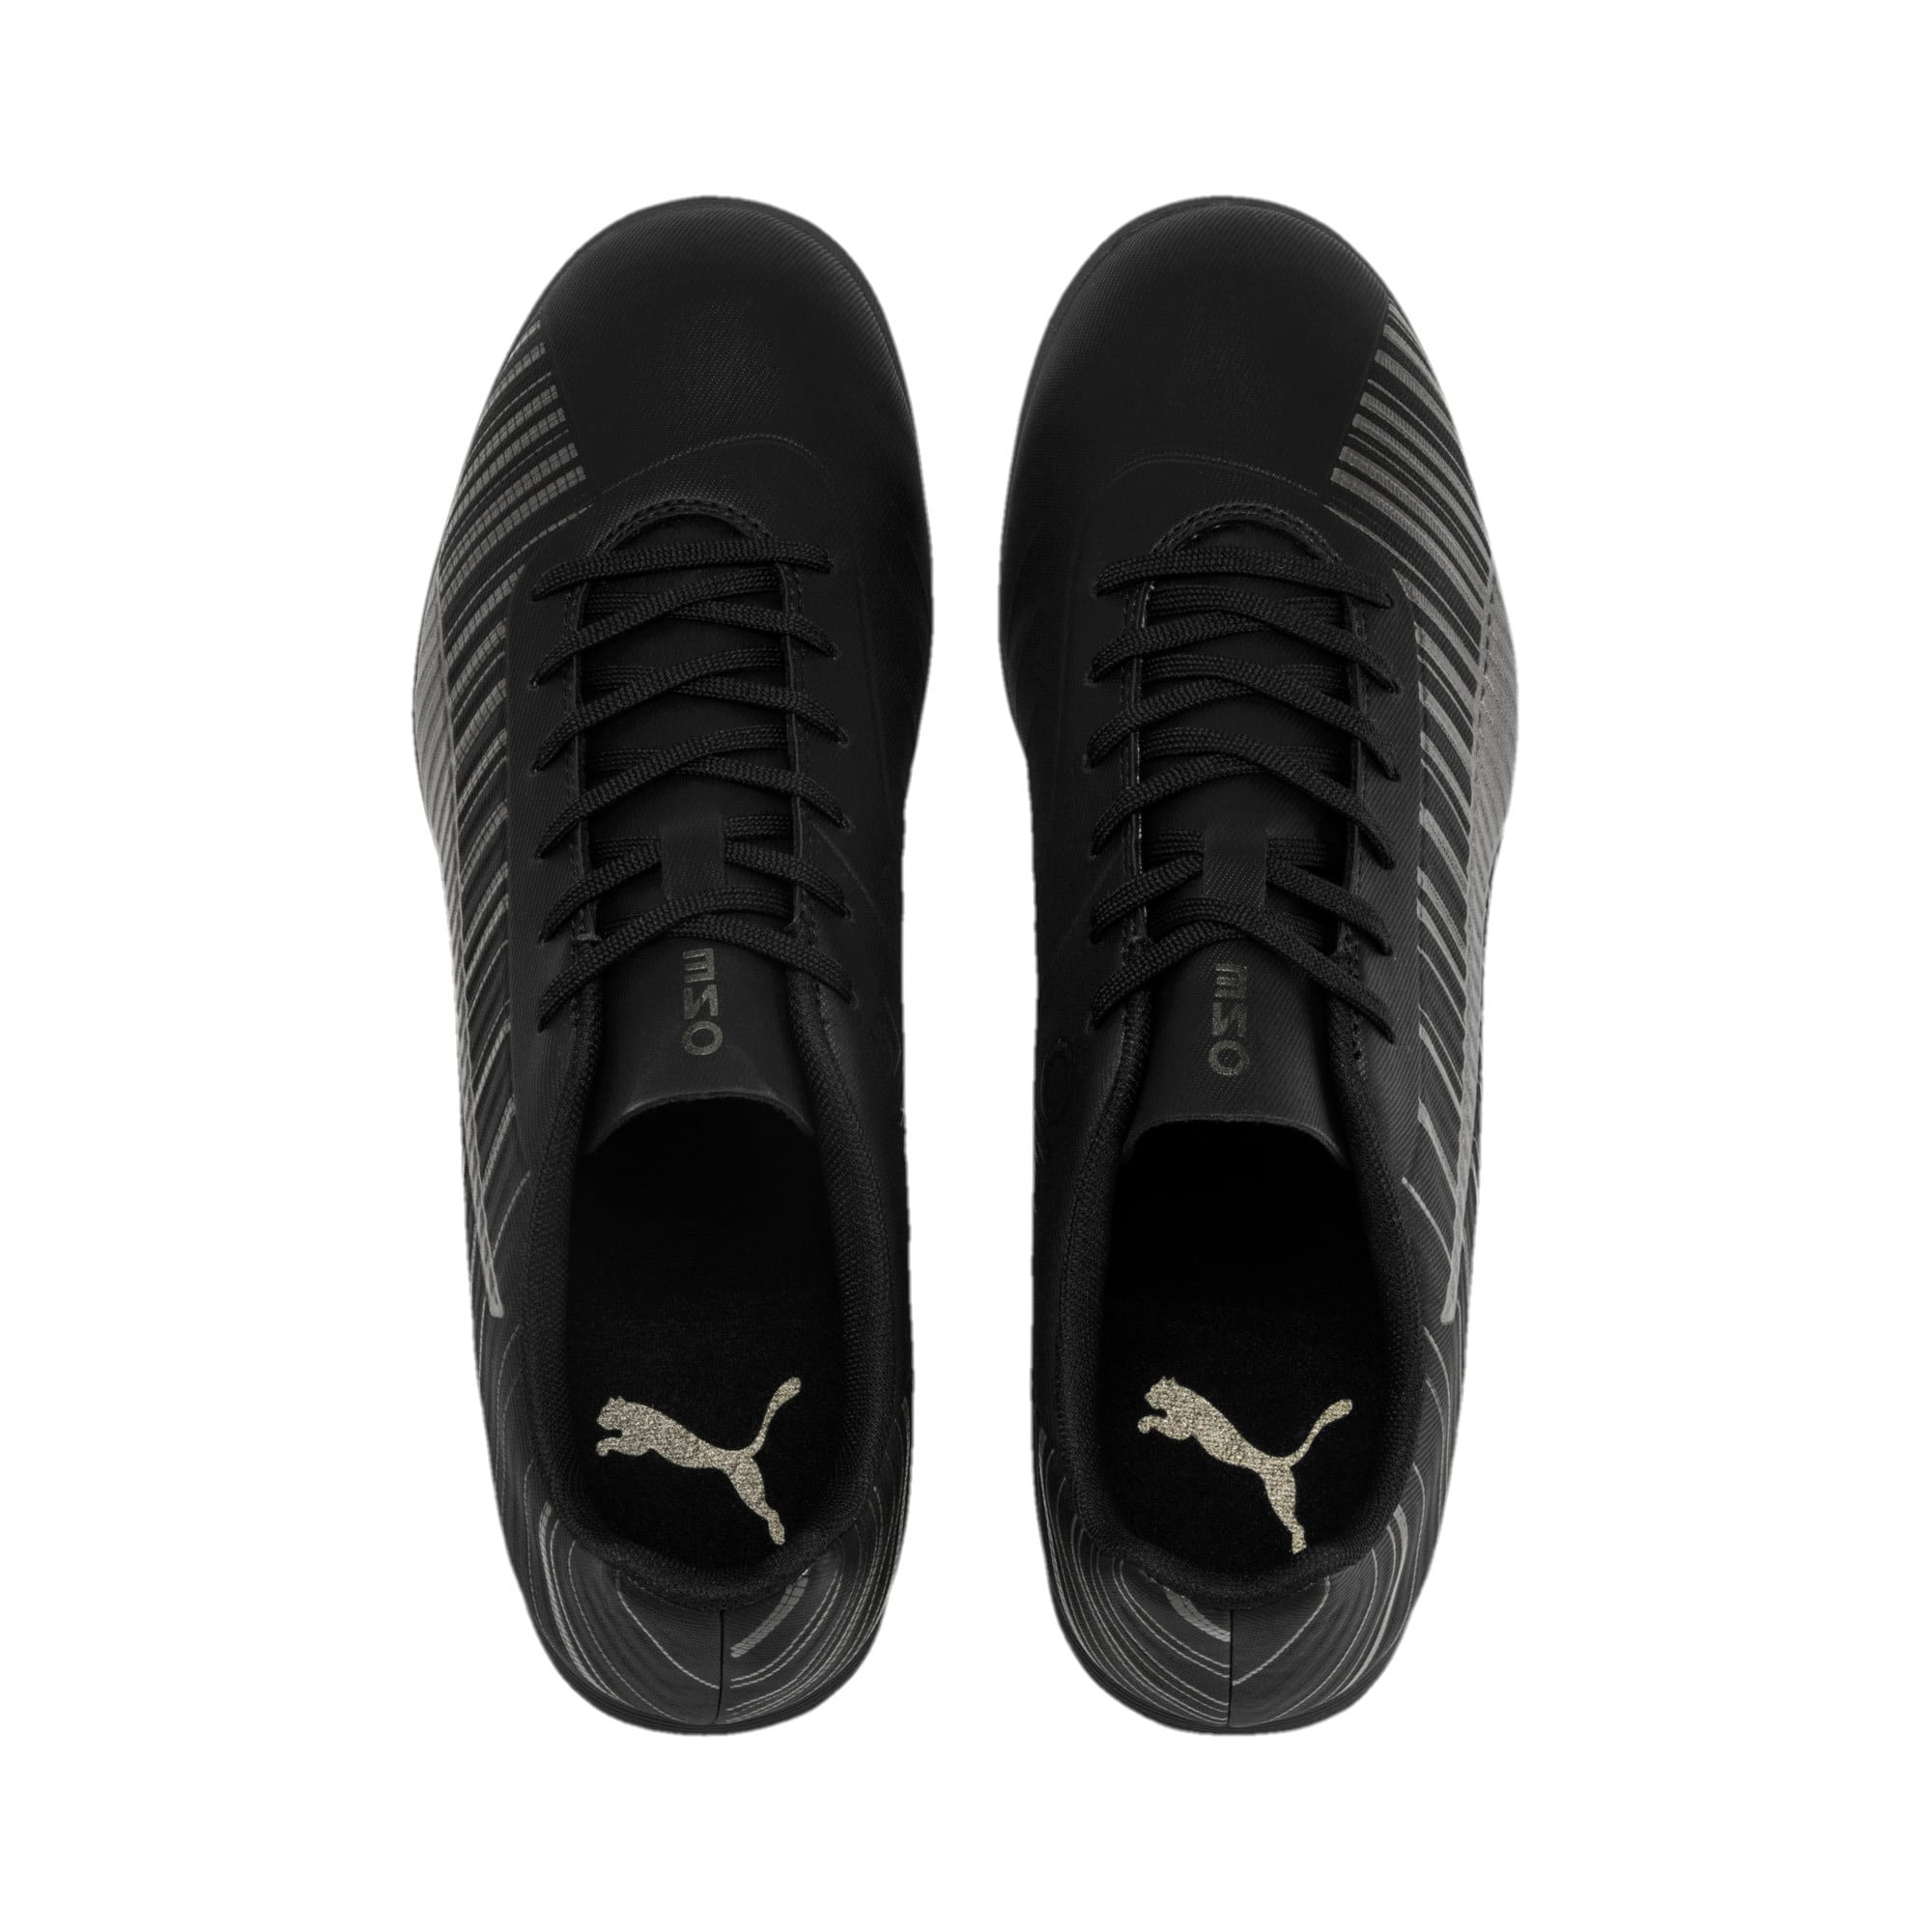 Thumbnail 7 of PUMA ONE 5.4 TT Men's Football Boots, Black-Black-Puma Aged Silver, medium